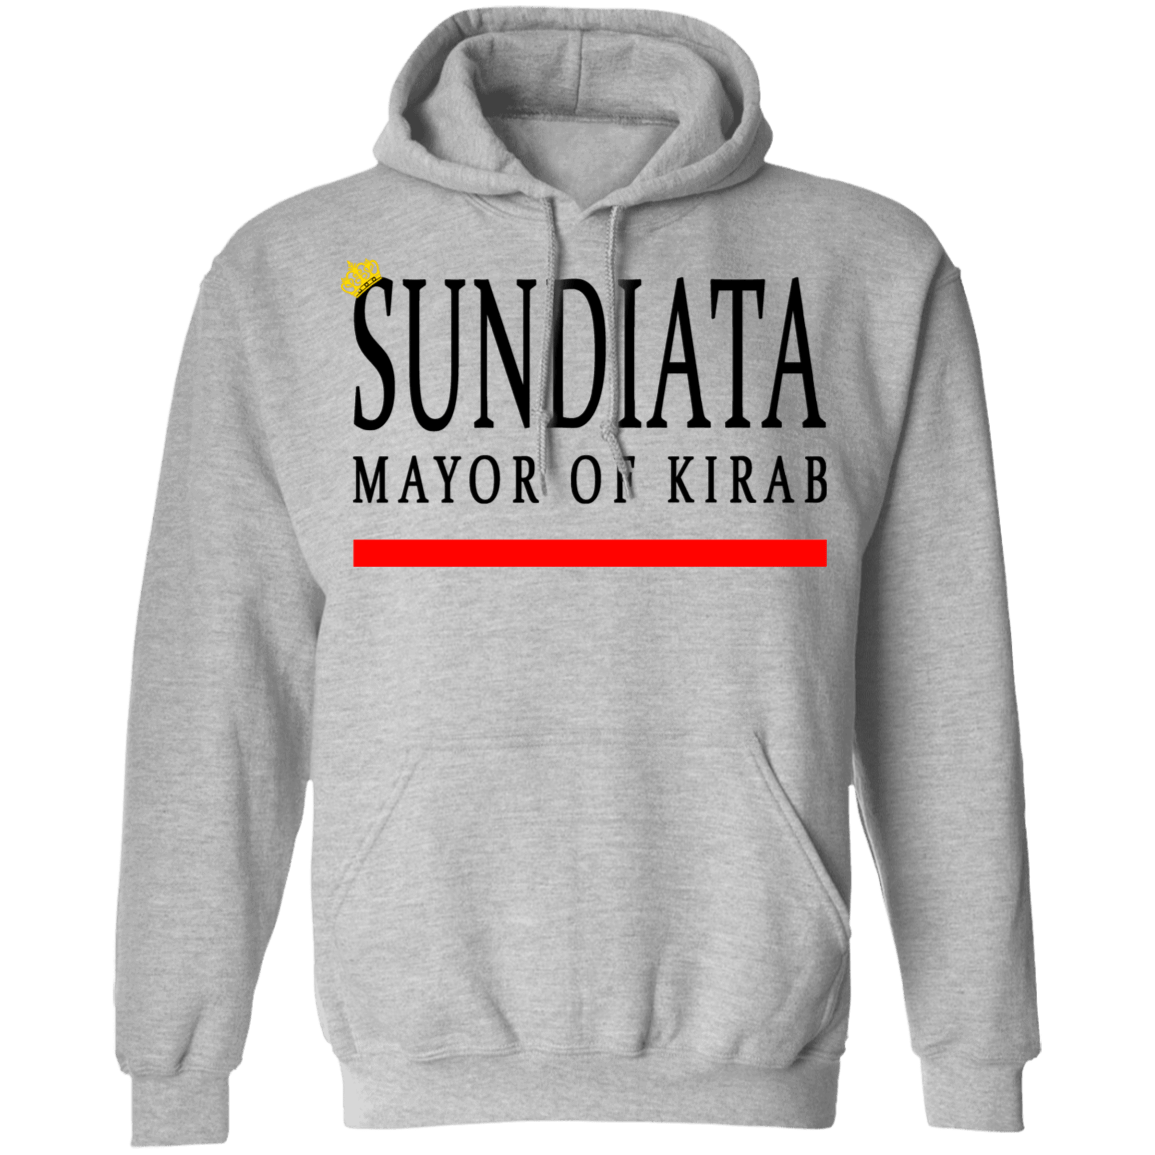 Sundiata Mayor Of Kirab T-Shirts, Hoodies, Tank 541-4741-79999095-23111 - Tee Ript